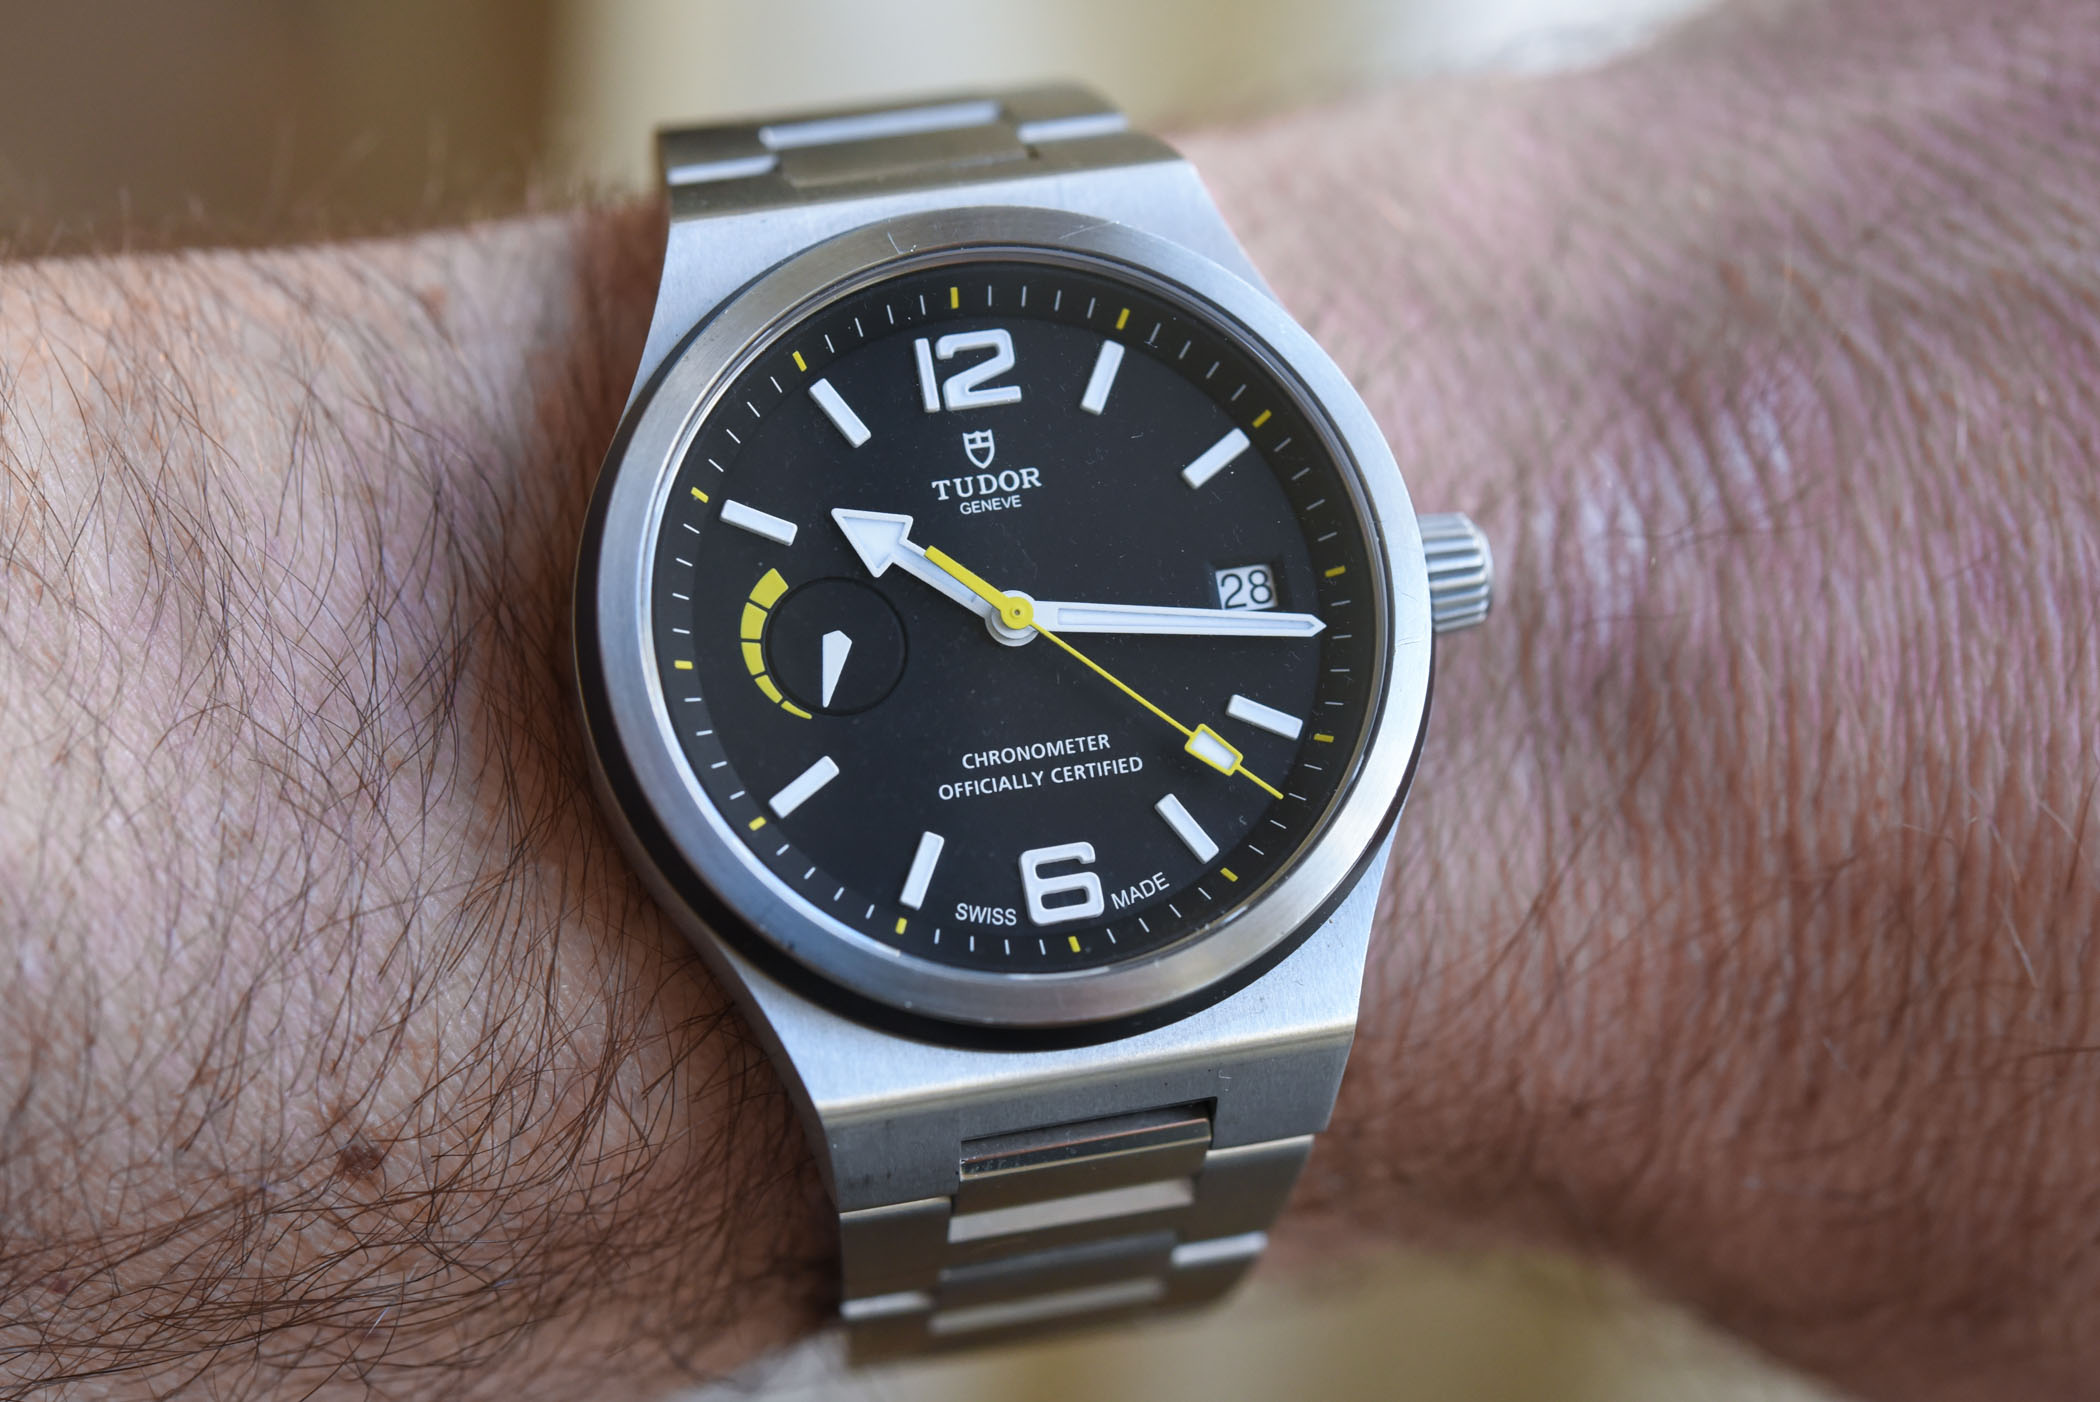 Tudor North Flag M91210N - review